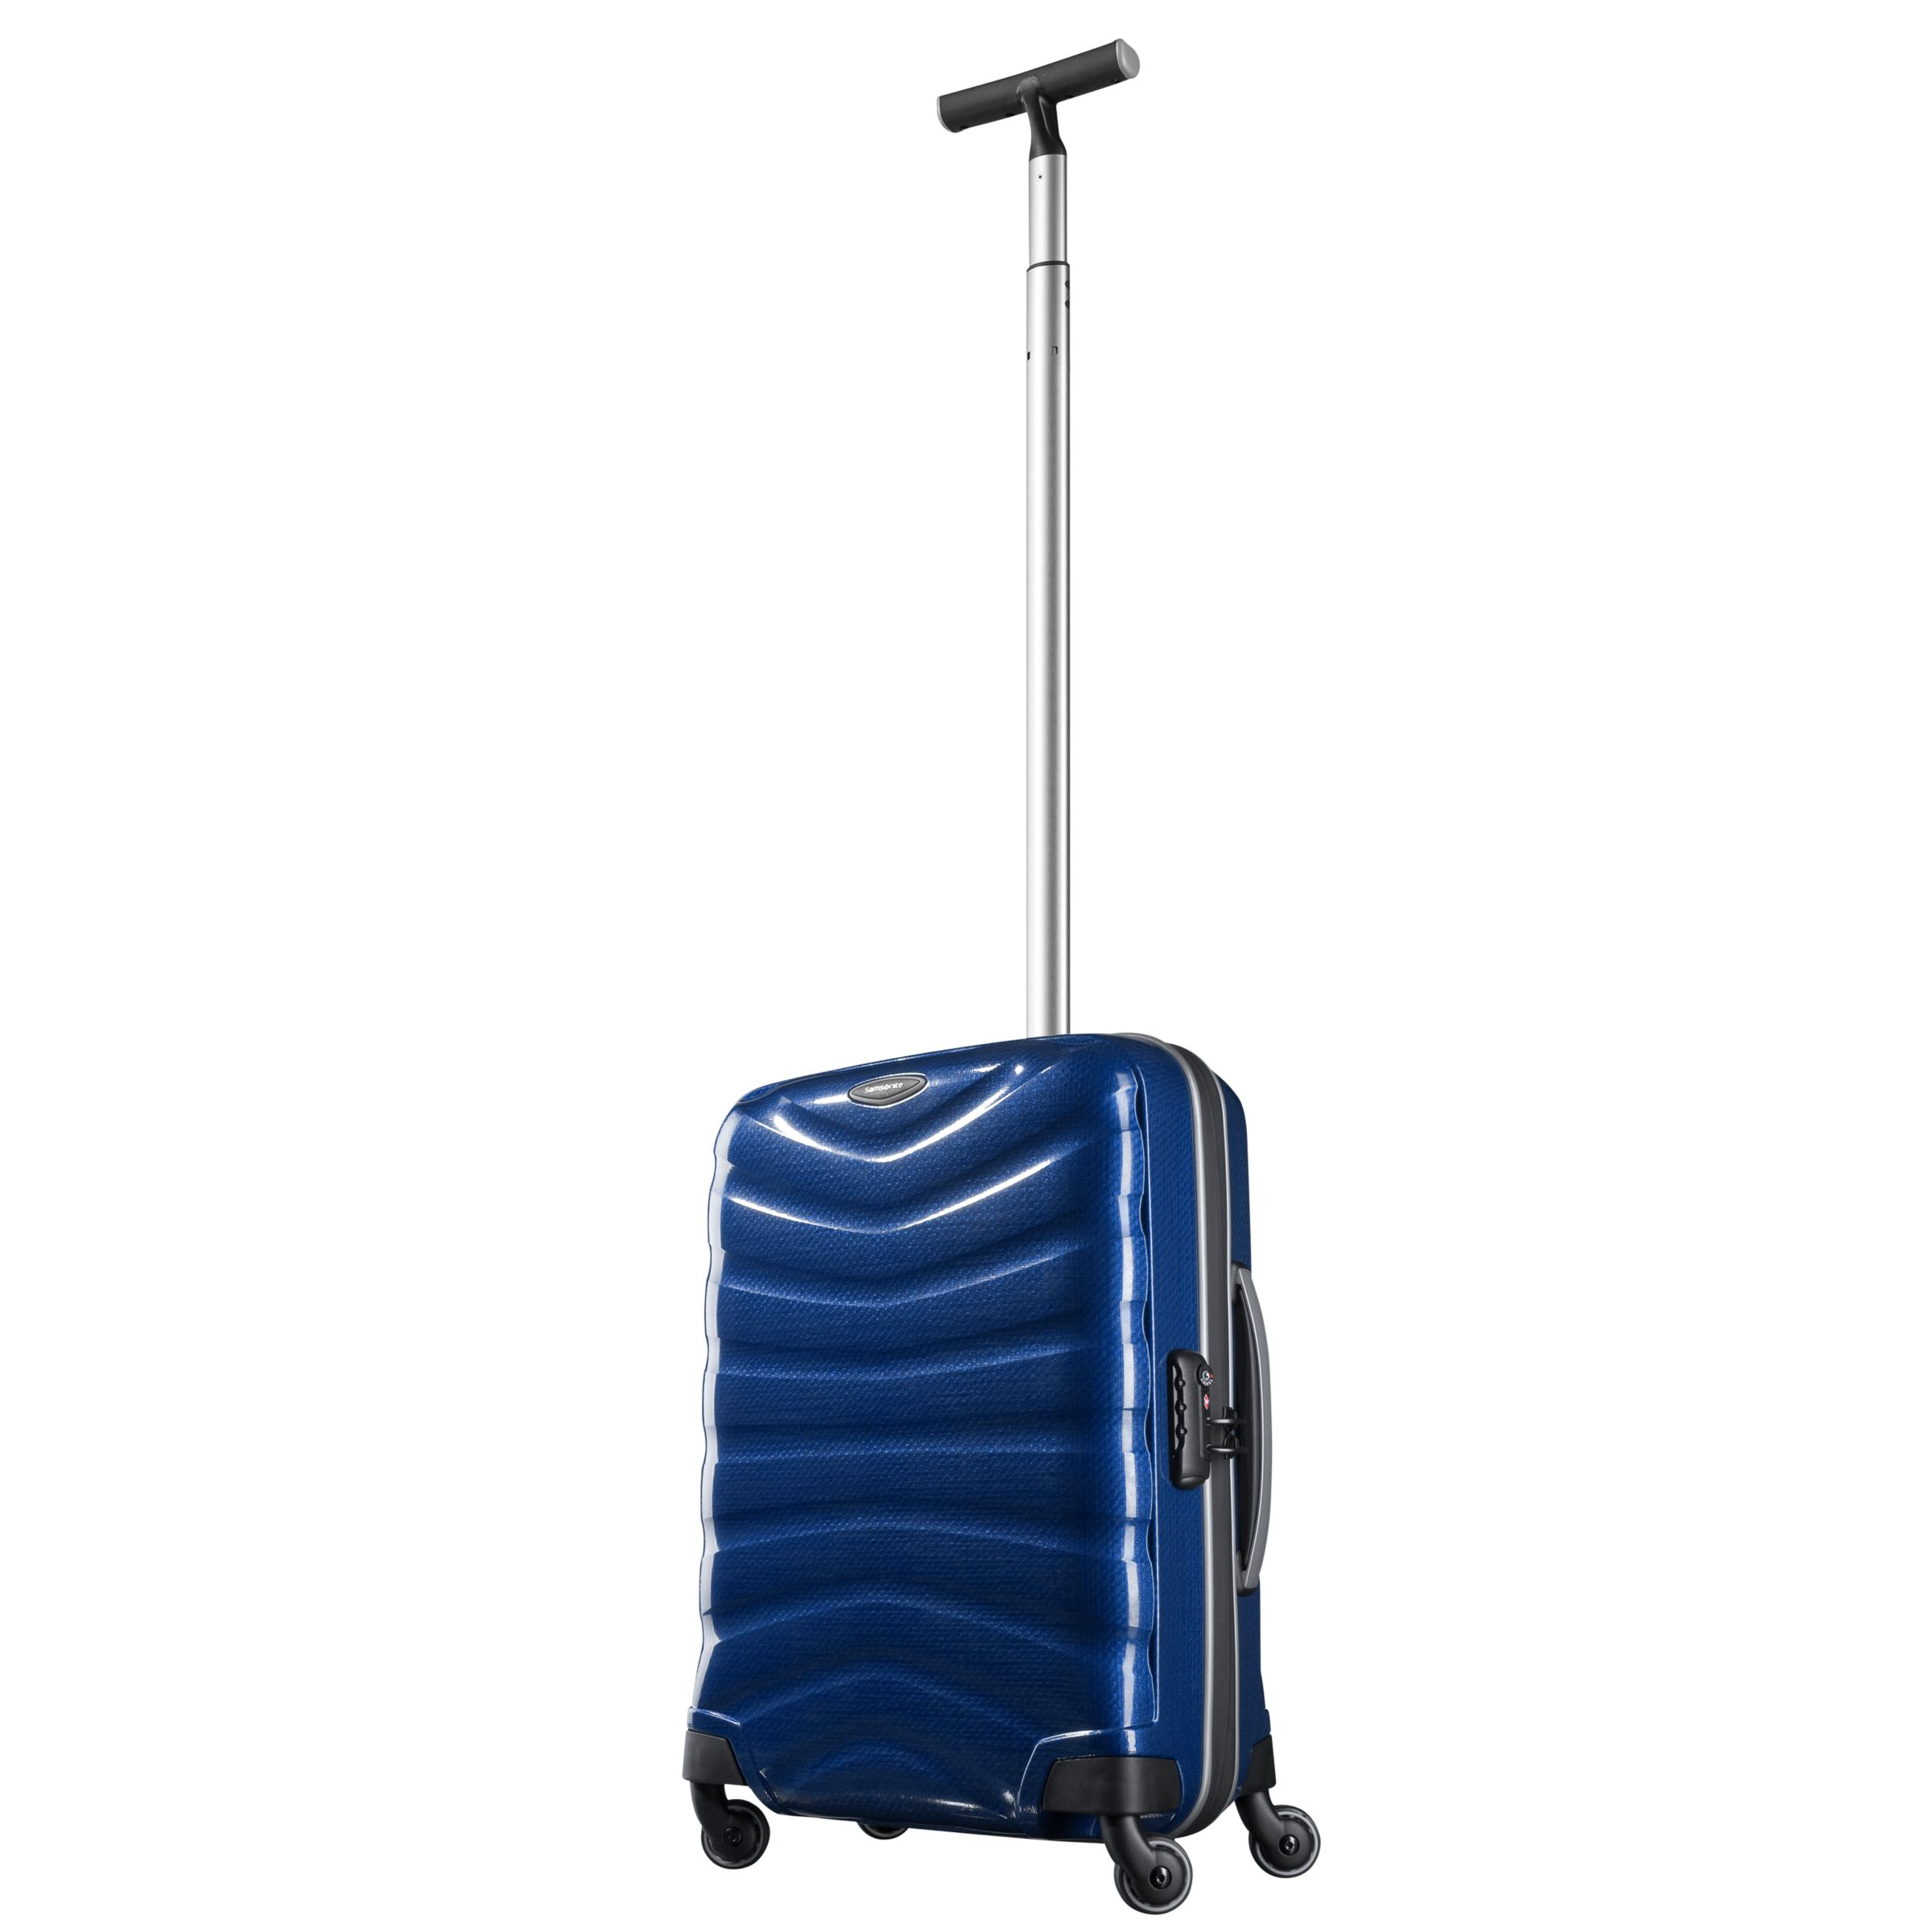 Samsonite Firelite 4-Wheel Spinner Suitcase, Deep Blue, Cabin